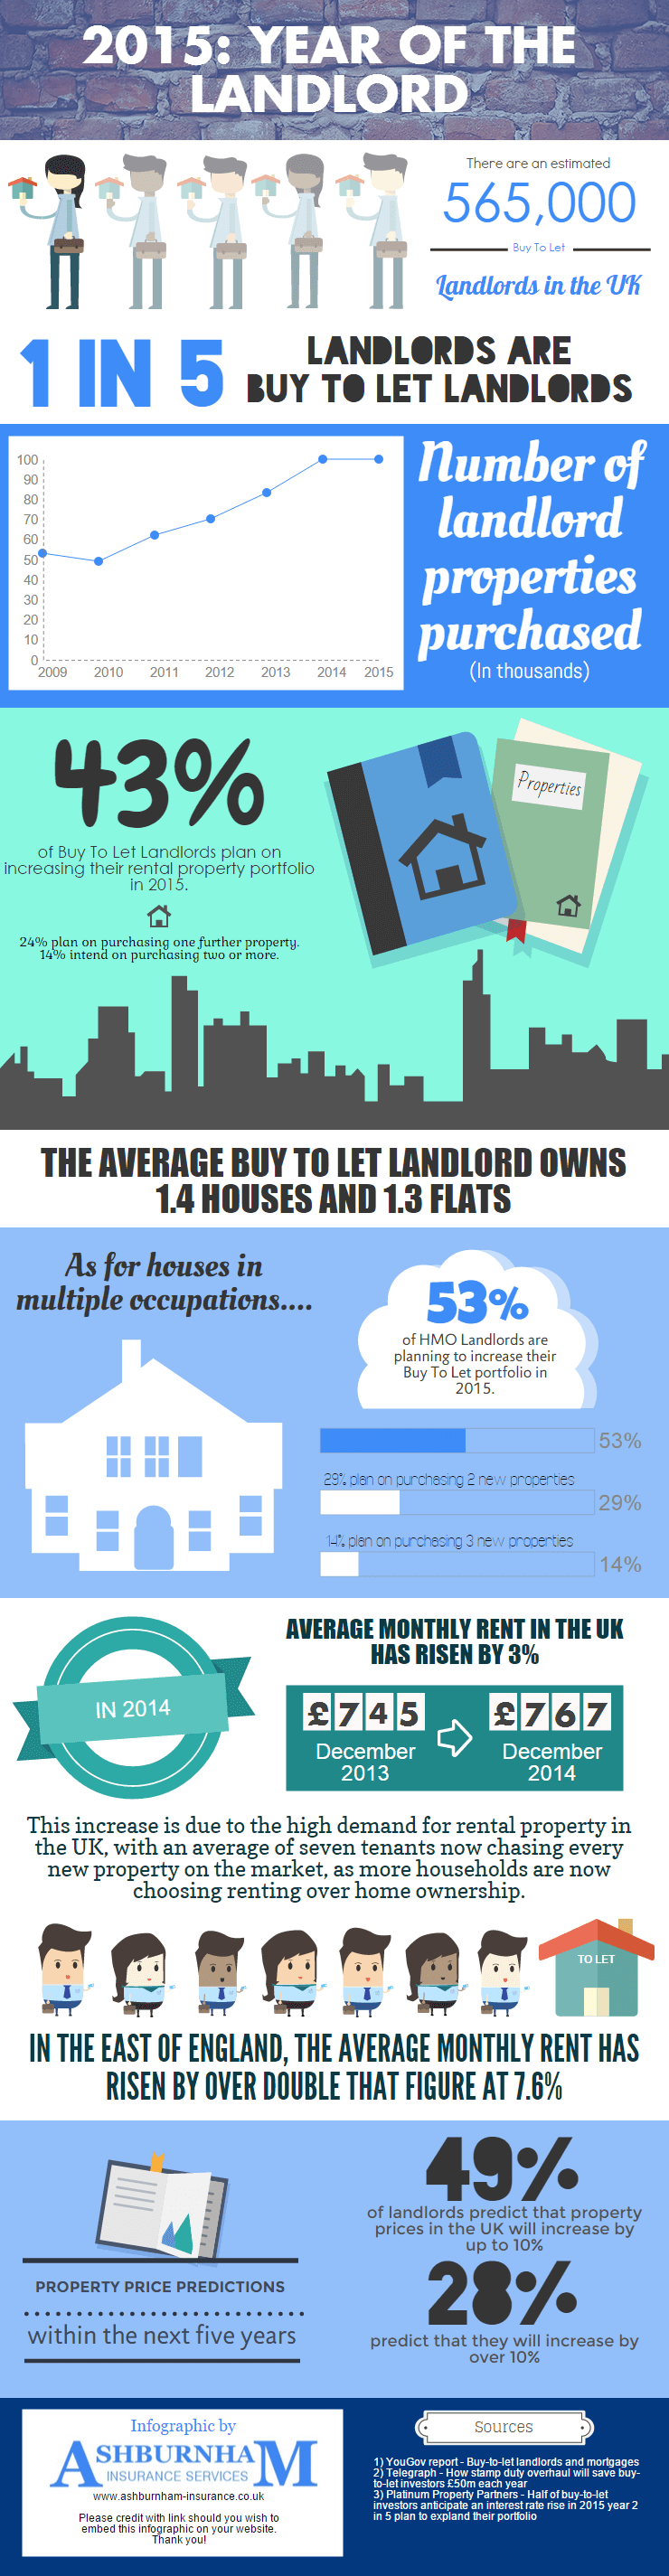 2015 Year of the Landlord Infographic